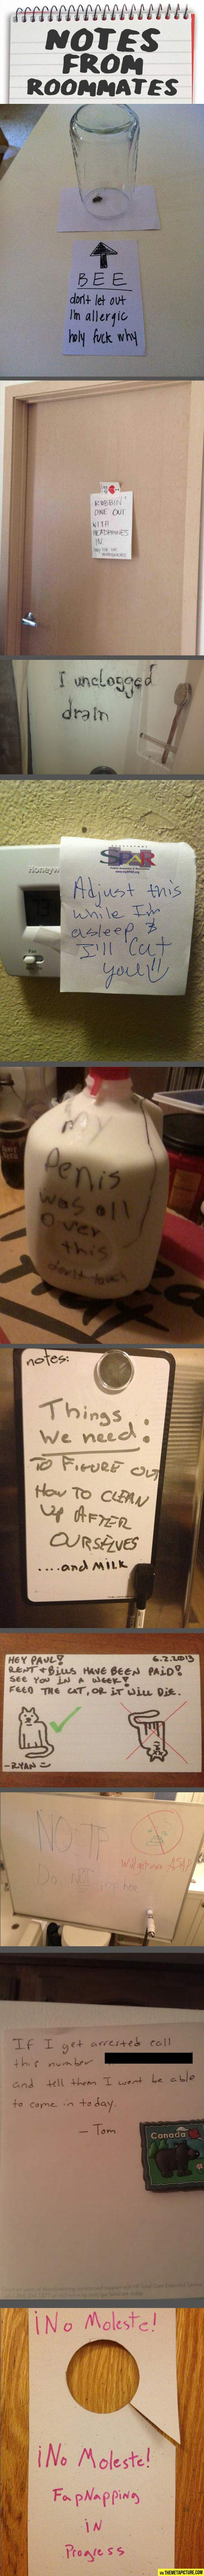 Notes from roommates... - The Meta Picture